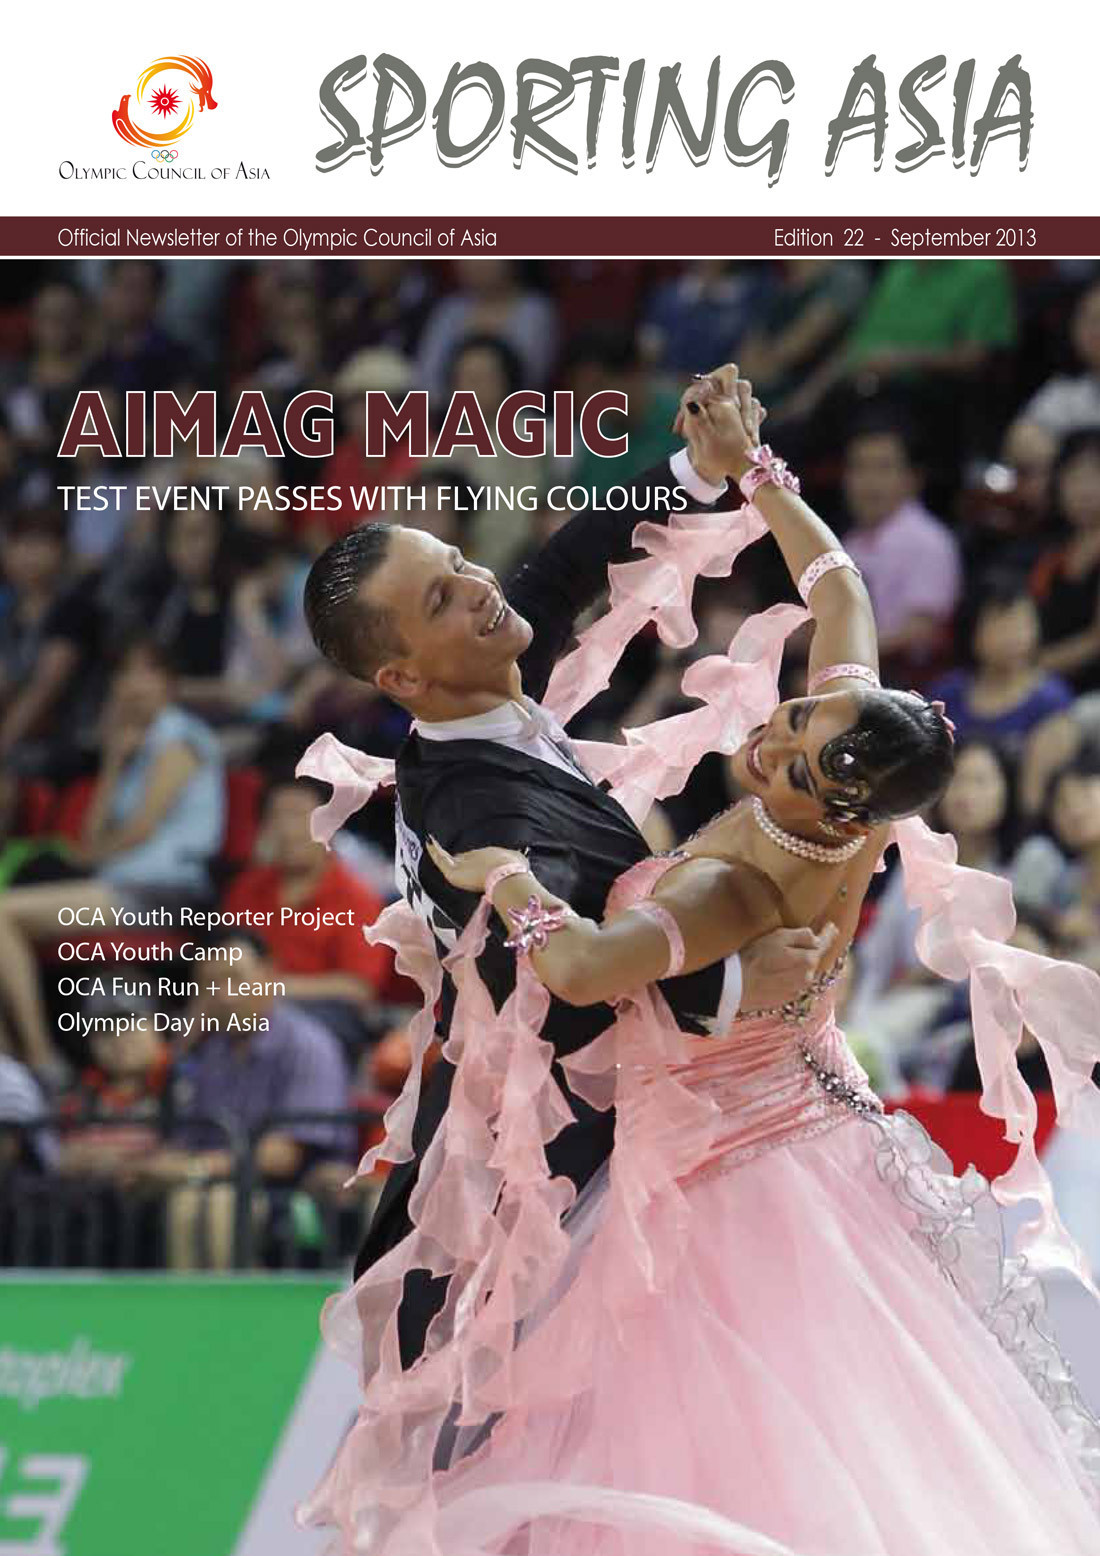 Sporting Asia - Edition 22 - SEP 2013